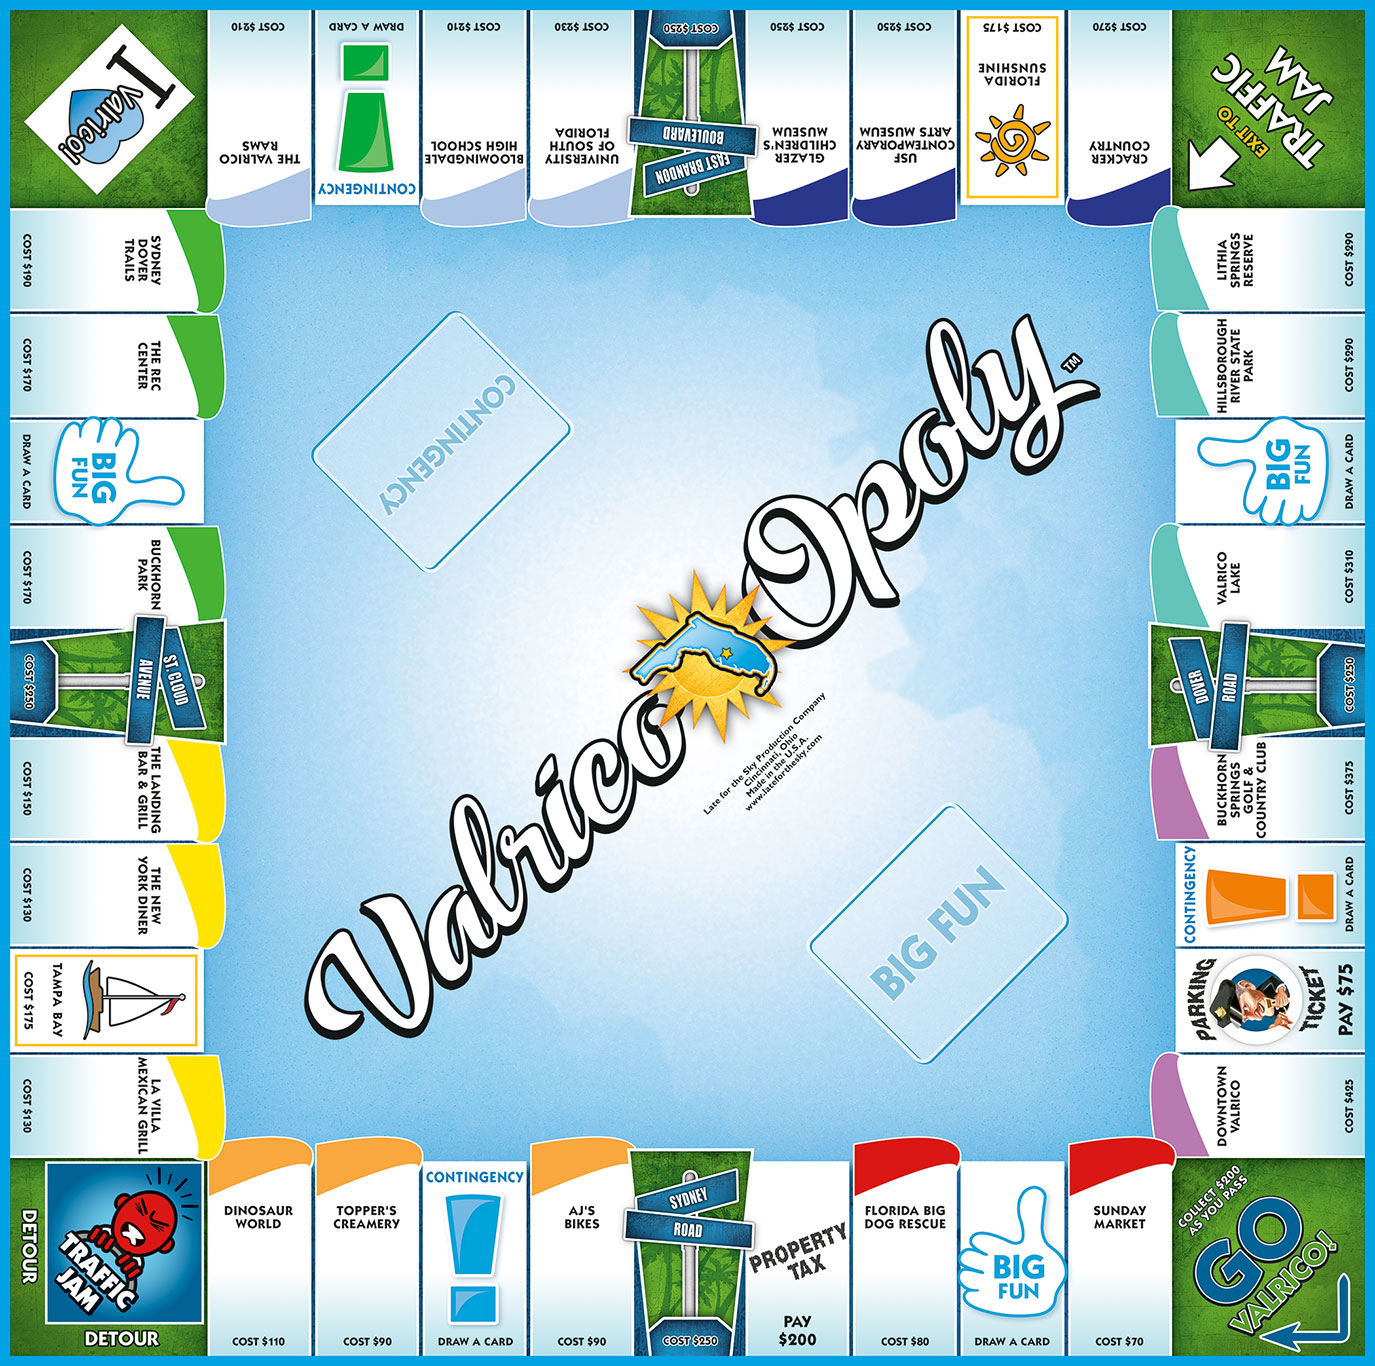 VALRICO-OPOLY Board Game